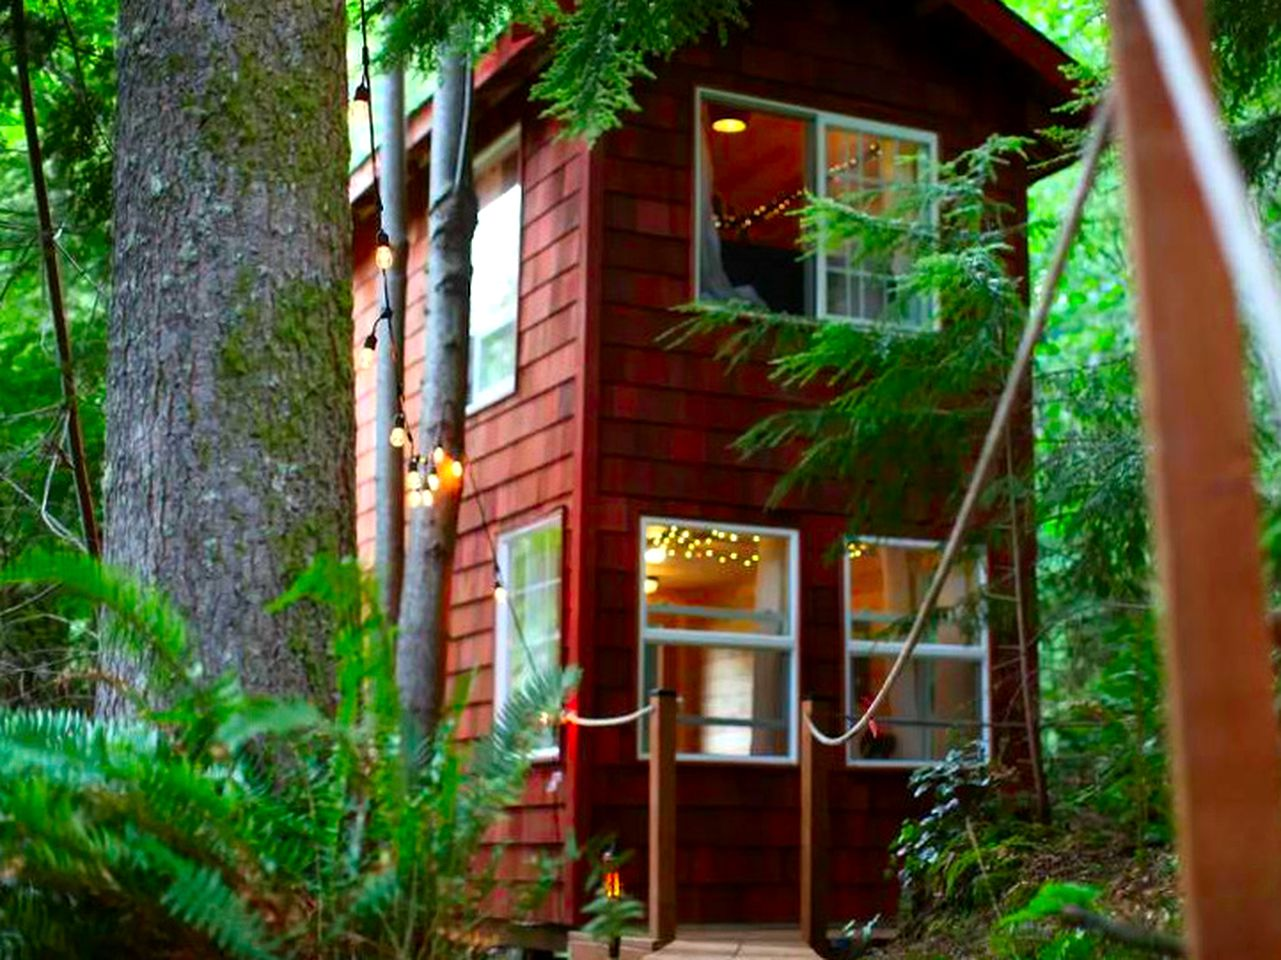 Tree house rental in Snohomish, Washington.